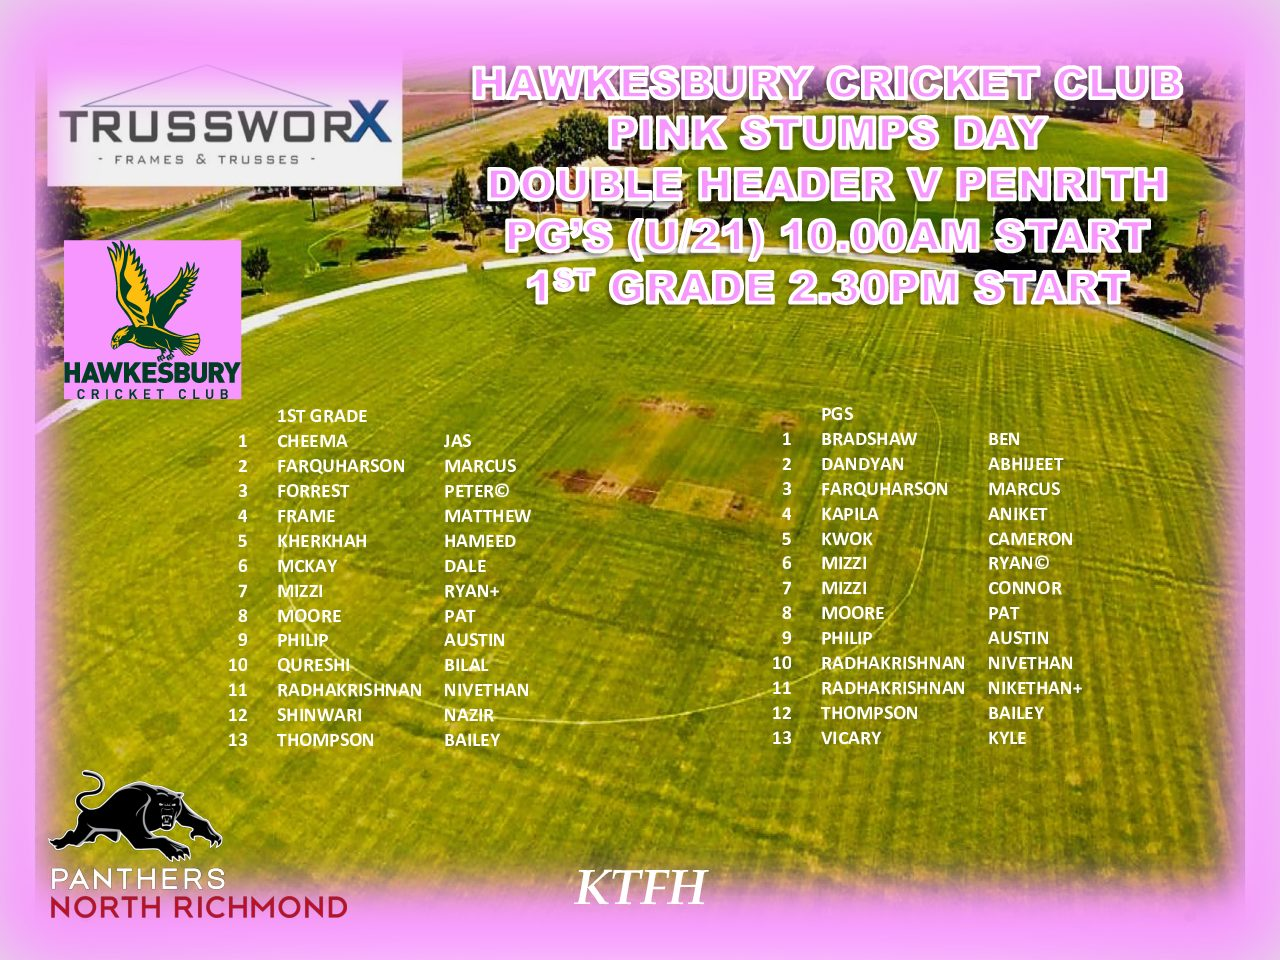 HAWKS NAME SQUAD FOR 1ST GRADE & POIDEVIN GRAY T20 DOUBLE HEADER SUNDAY 24TH NOVEMBER